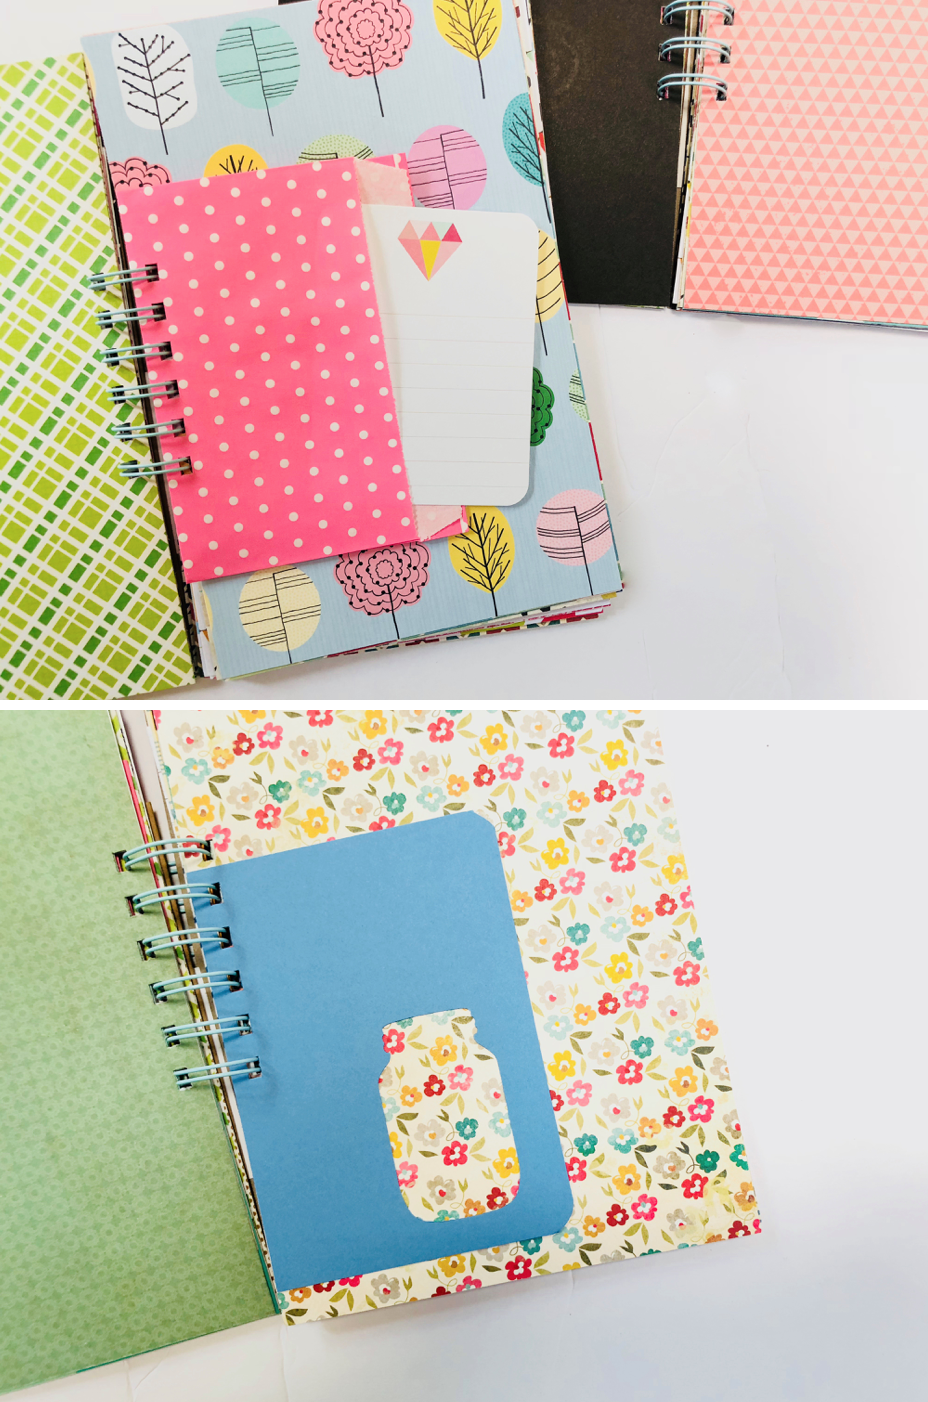 #30lists #30 Days of Lists #mini album #mini book #journal #listing challenge #list journal